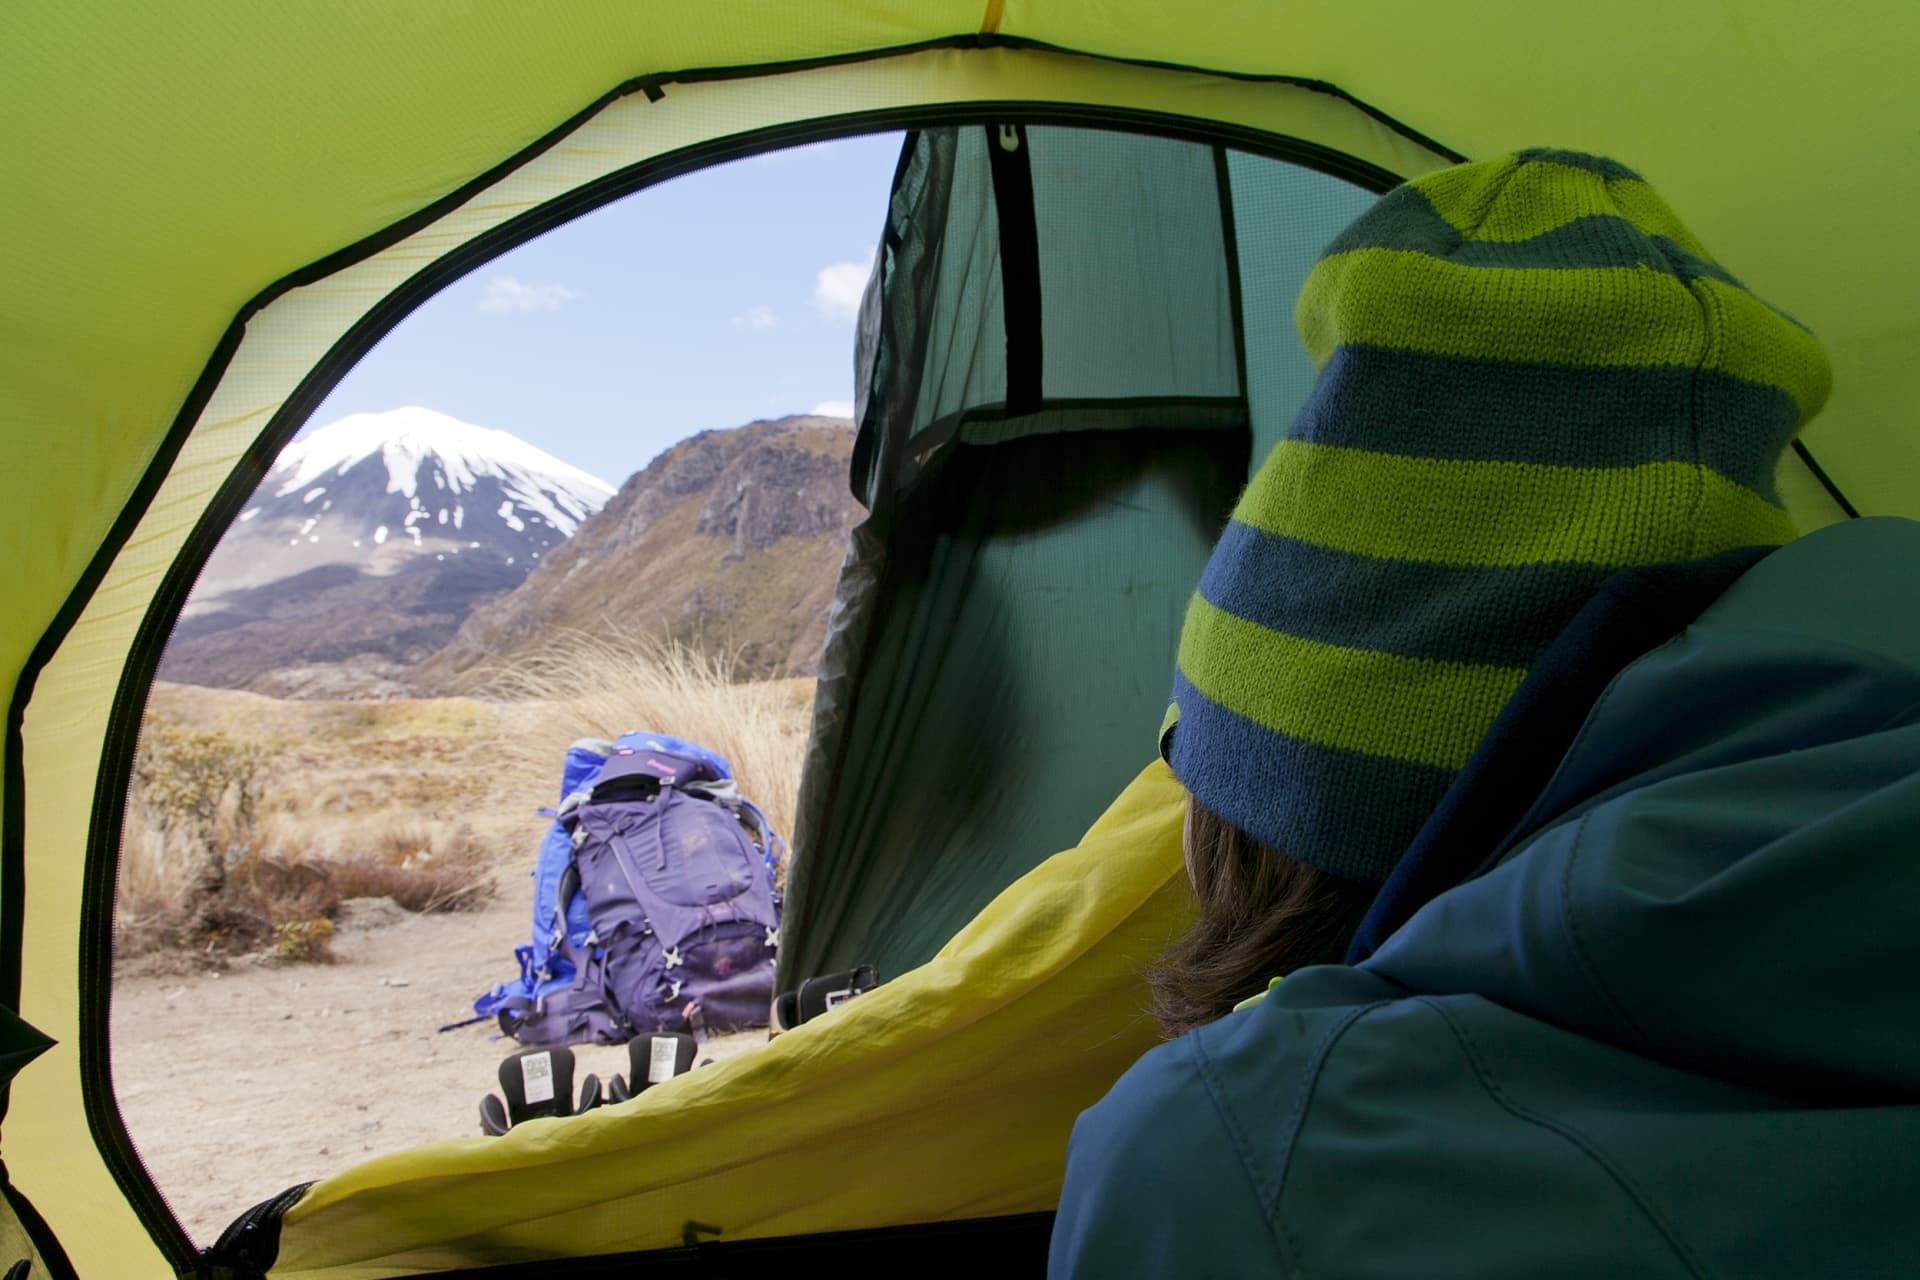 Front seat view of Mount Ngauruhoe from the tent.